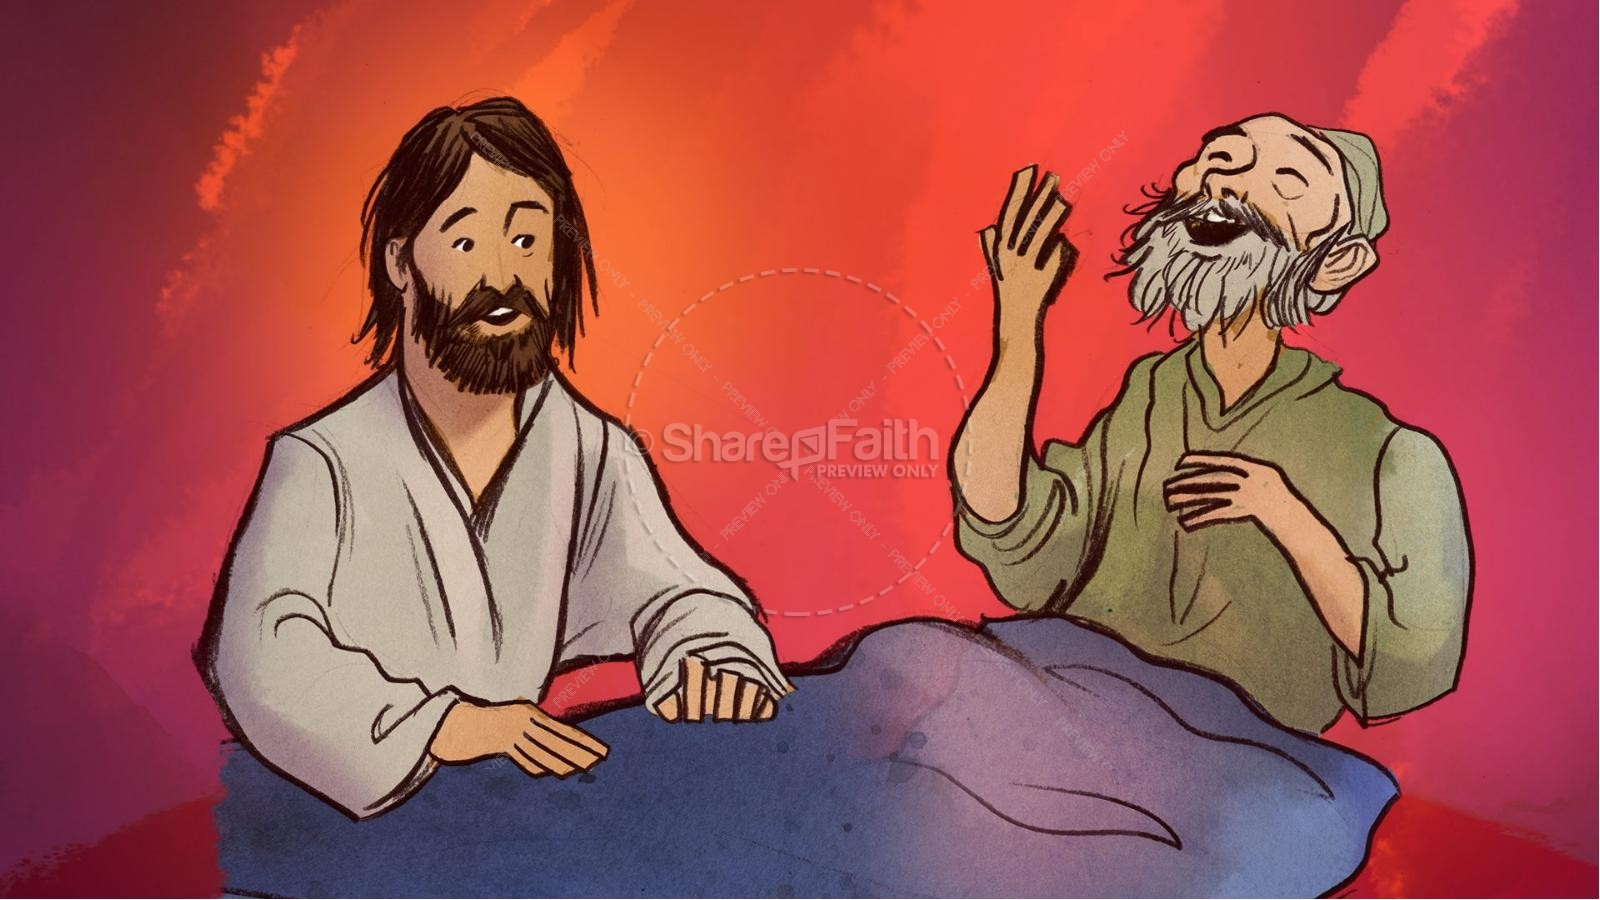 clipart of jesus healing - photo #34